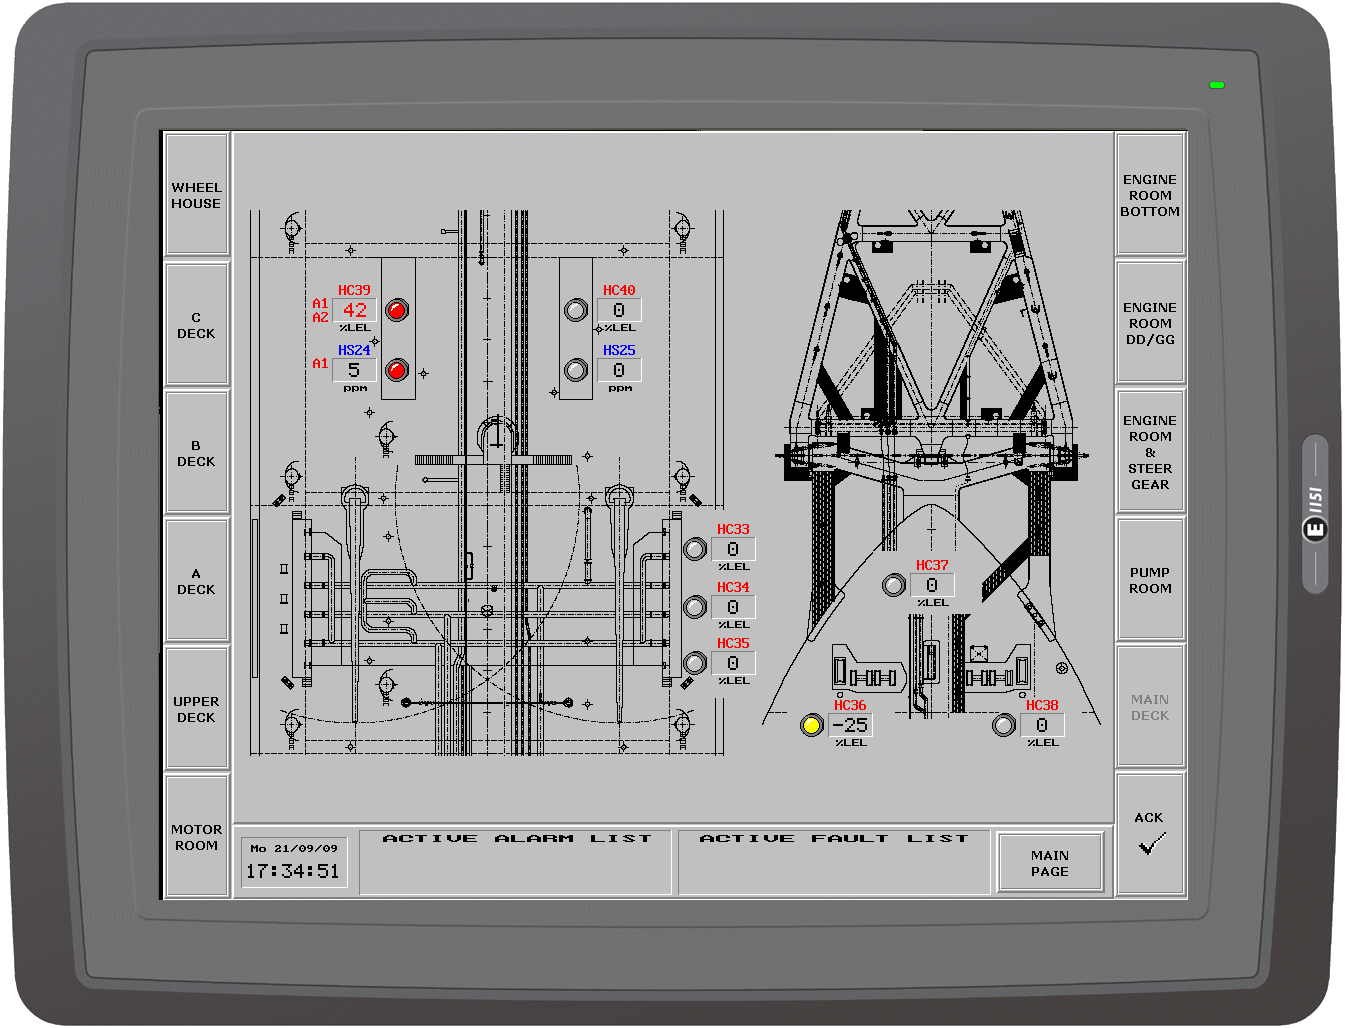 Firegas Fire E Gas Protezioni Antincendio Rivelazione A Engine Diagram Ancb Specializes In Combined Monitoring Systems Connected To Emergency Shut Down Esd Be Installed Aboard Fso And Fpso Units